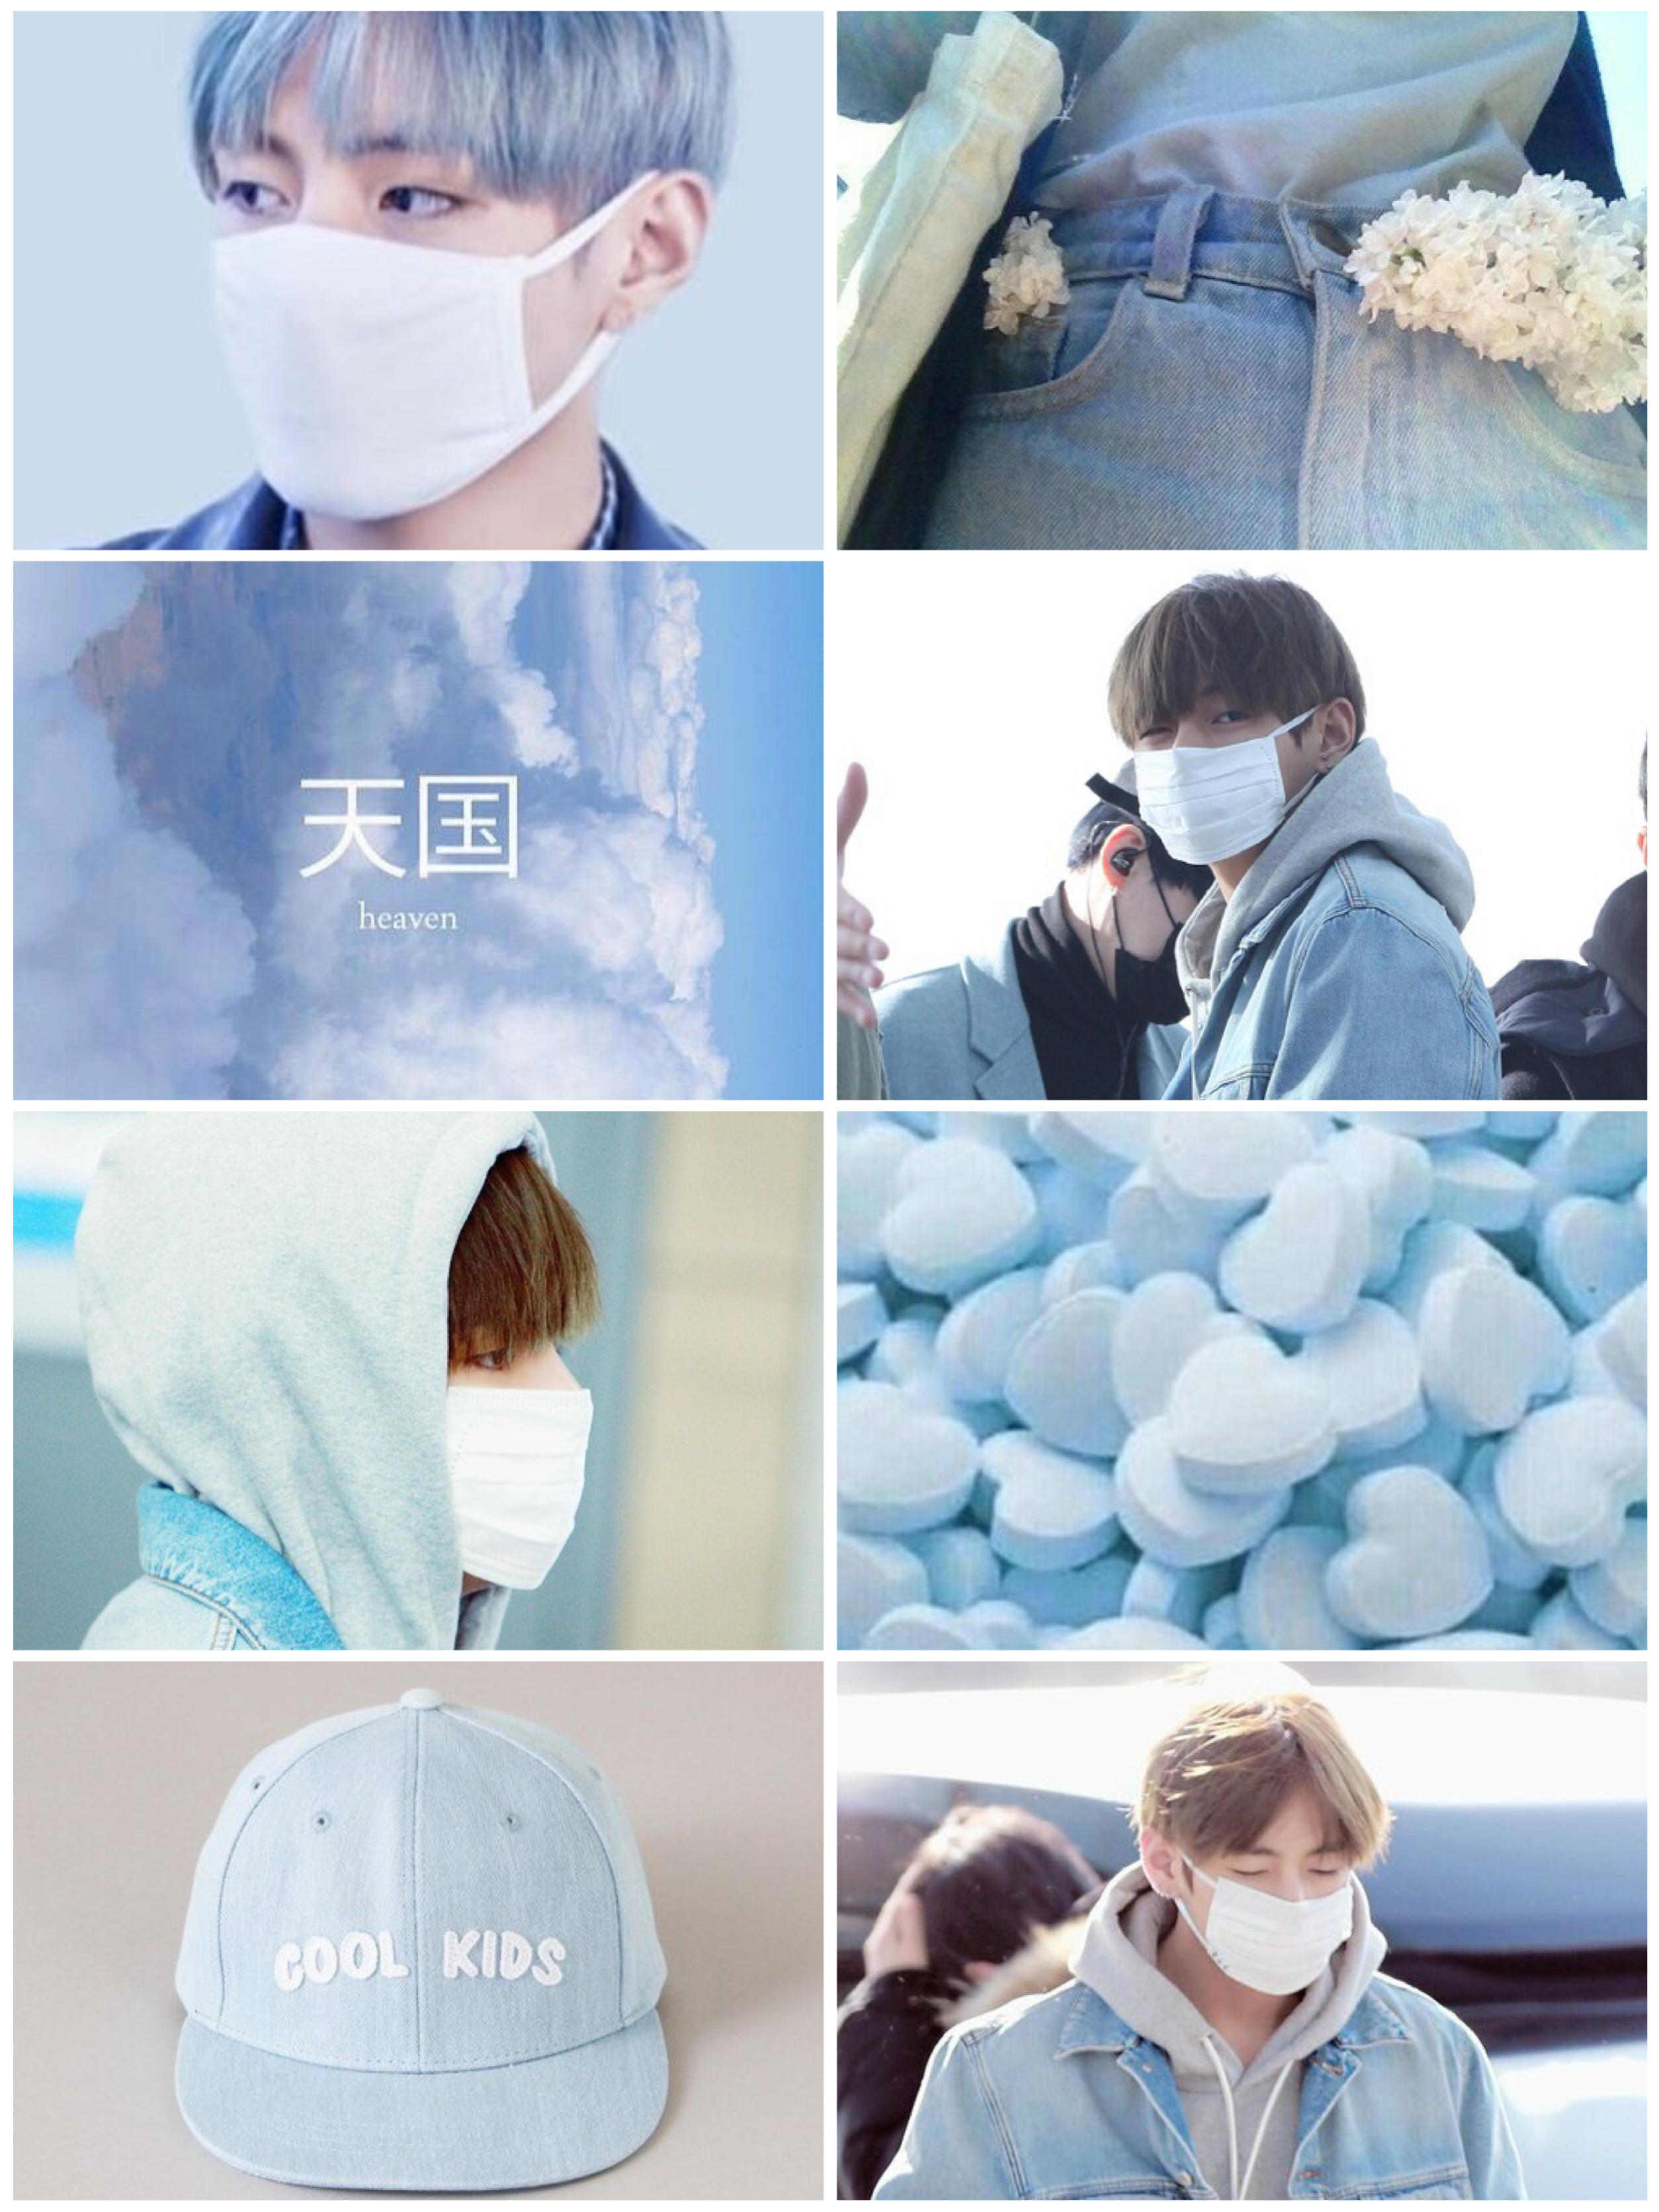 Aesthetic Tae w/ a mask~ Blue and white